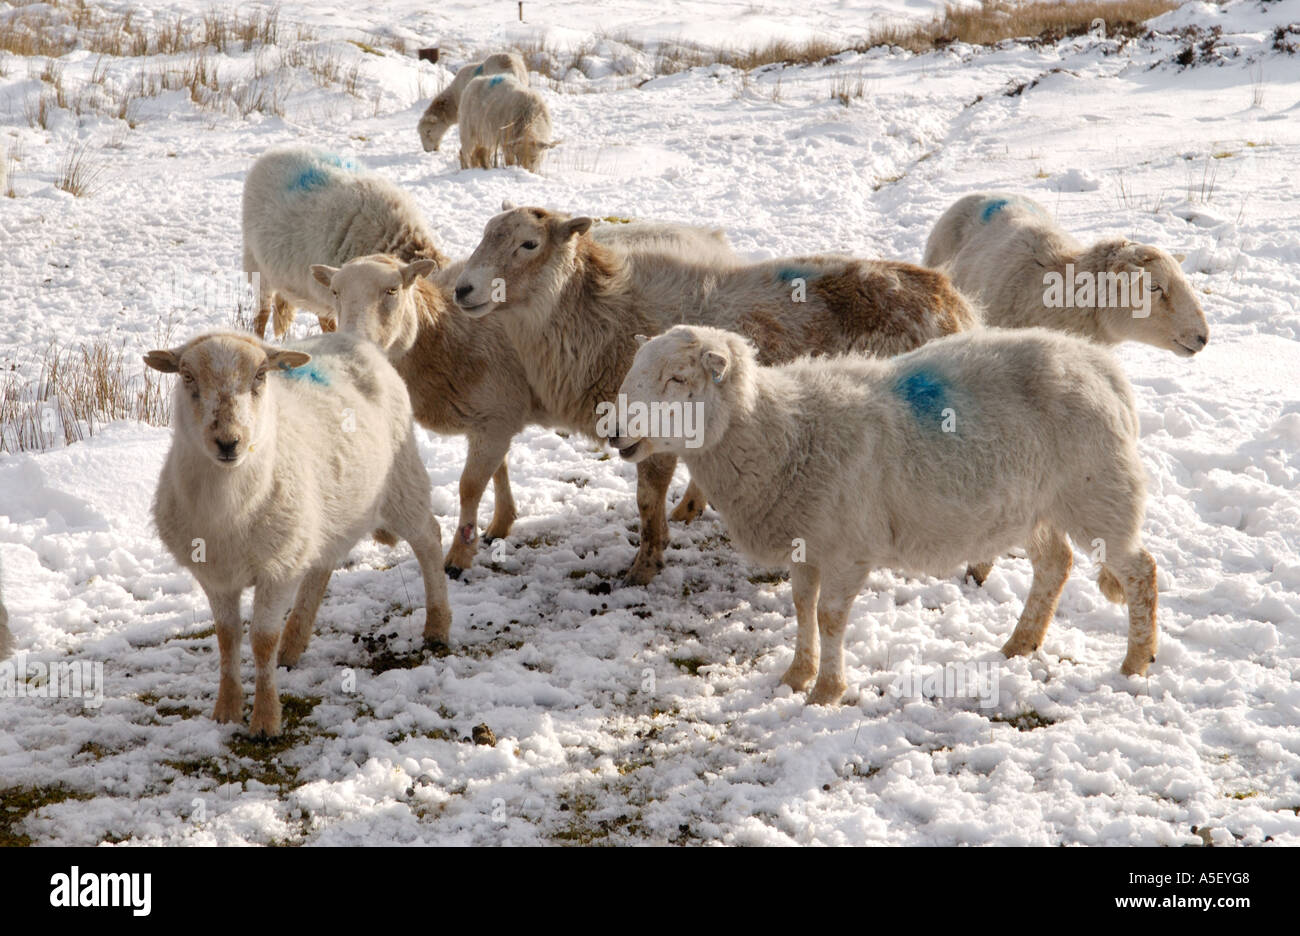 Flock of sheep forage for food in winter on snow covered mountainside in Brecon Beacons National Park Blaenavon Wales UK - Stock Image